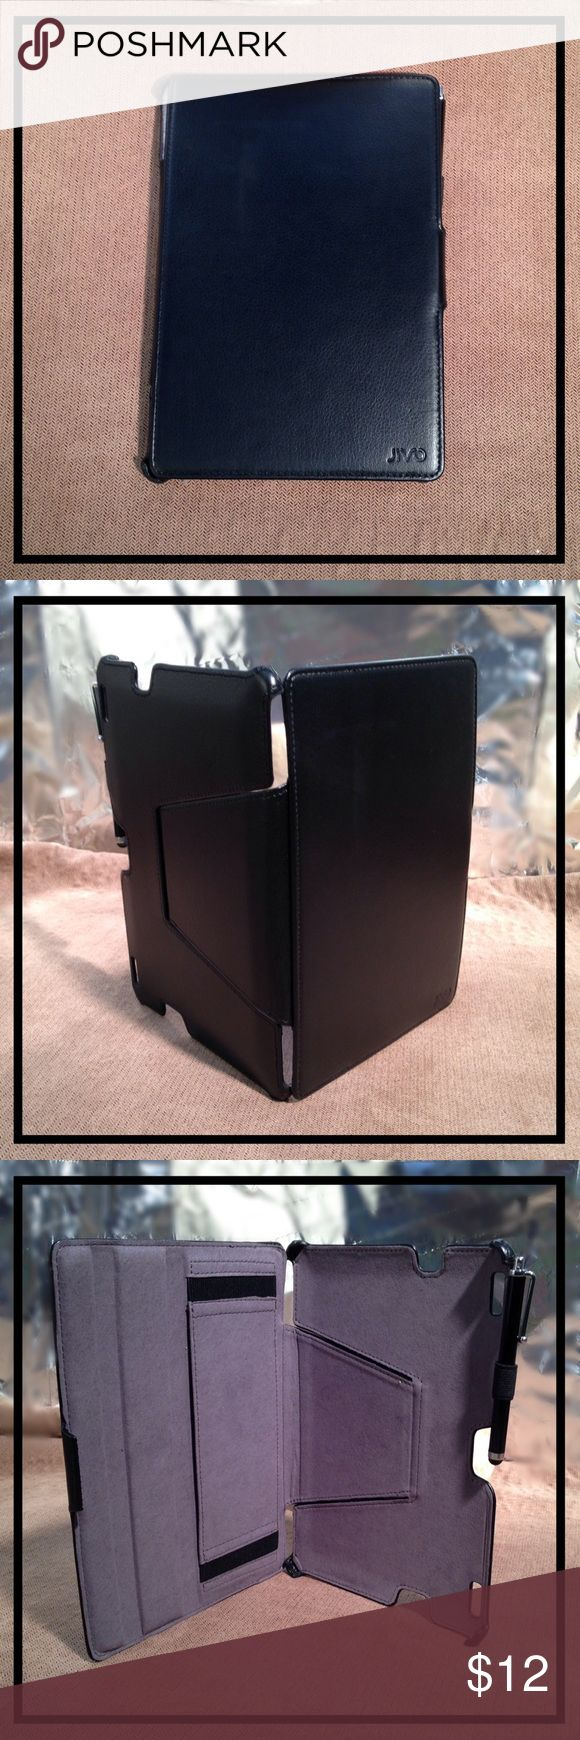 """KINDLE FIRE HDX 8.9"""" TABLET CASE & STYLUS IN BLACK ⭐️ BRAND NEW ⭐️ KINDLE FIRE HDX 8.9inch TABLET CASE with STYLUS! Color: Black w/gray interior. Style: Bookcover.  Protect your KINDLE FIRE 8.9"""" with this BOOKCOVER CASE & STYLUS.   GREAT GIFT  Accessories Phone Cases"""